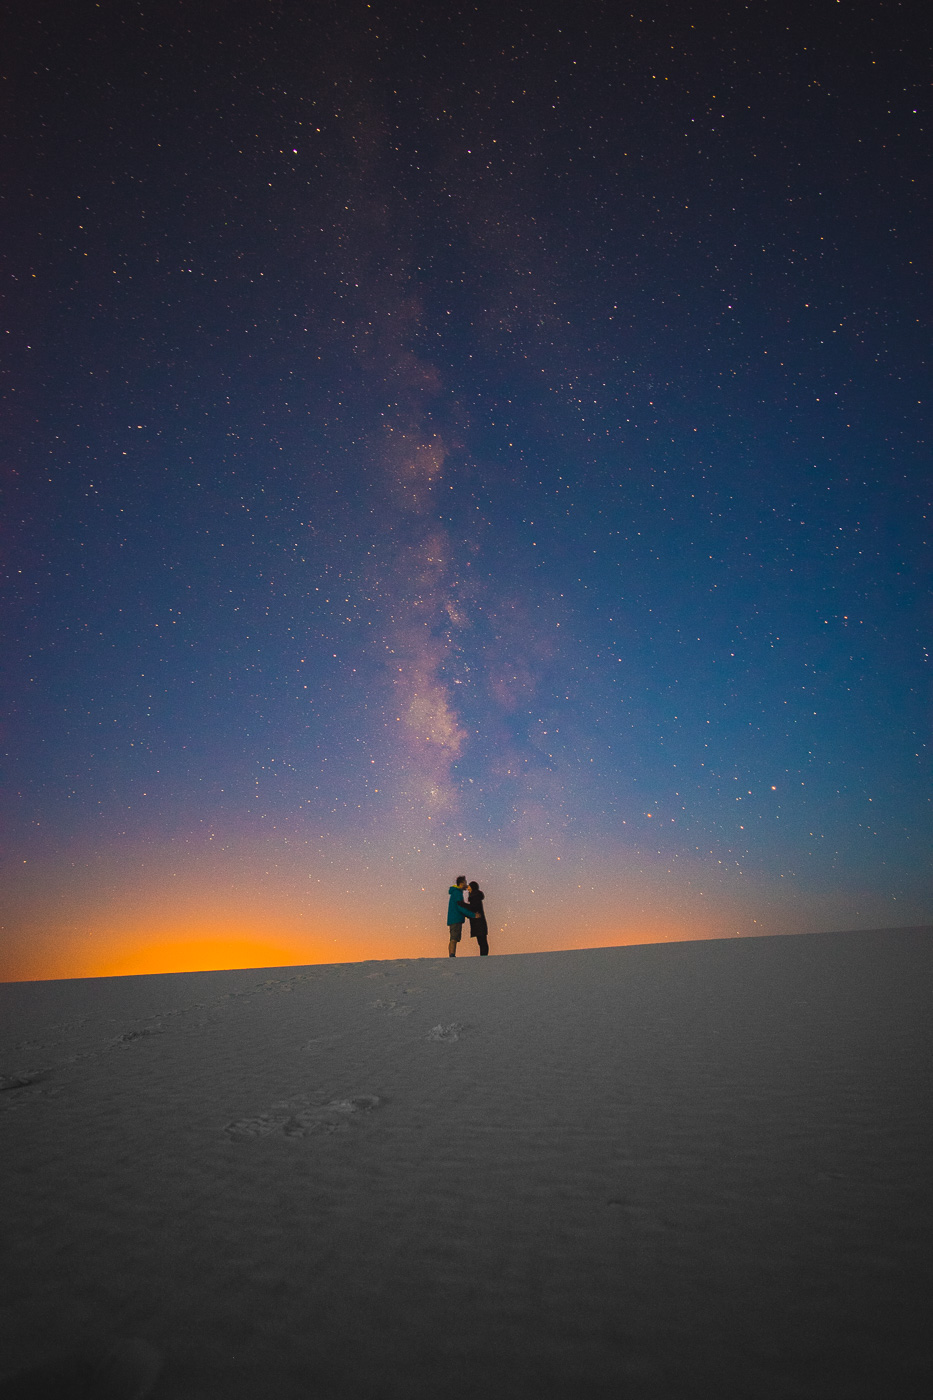 The Milky Way at White Sands National Monument